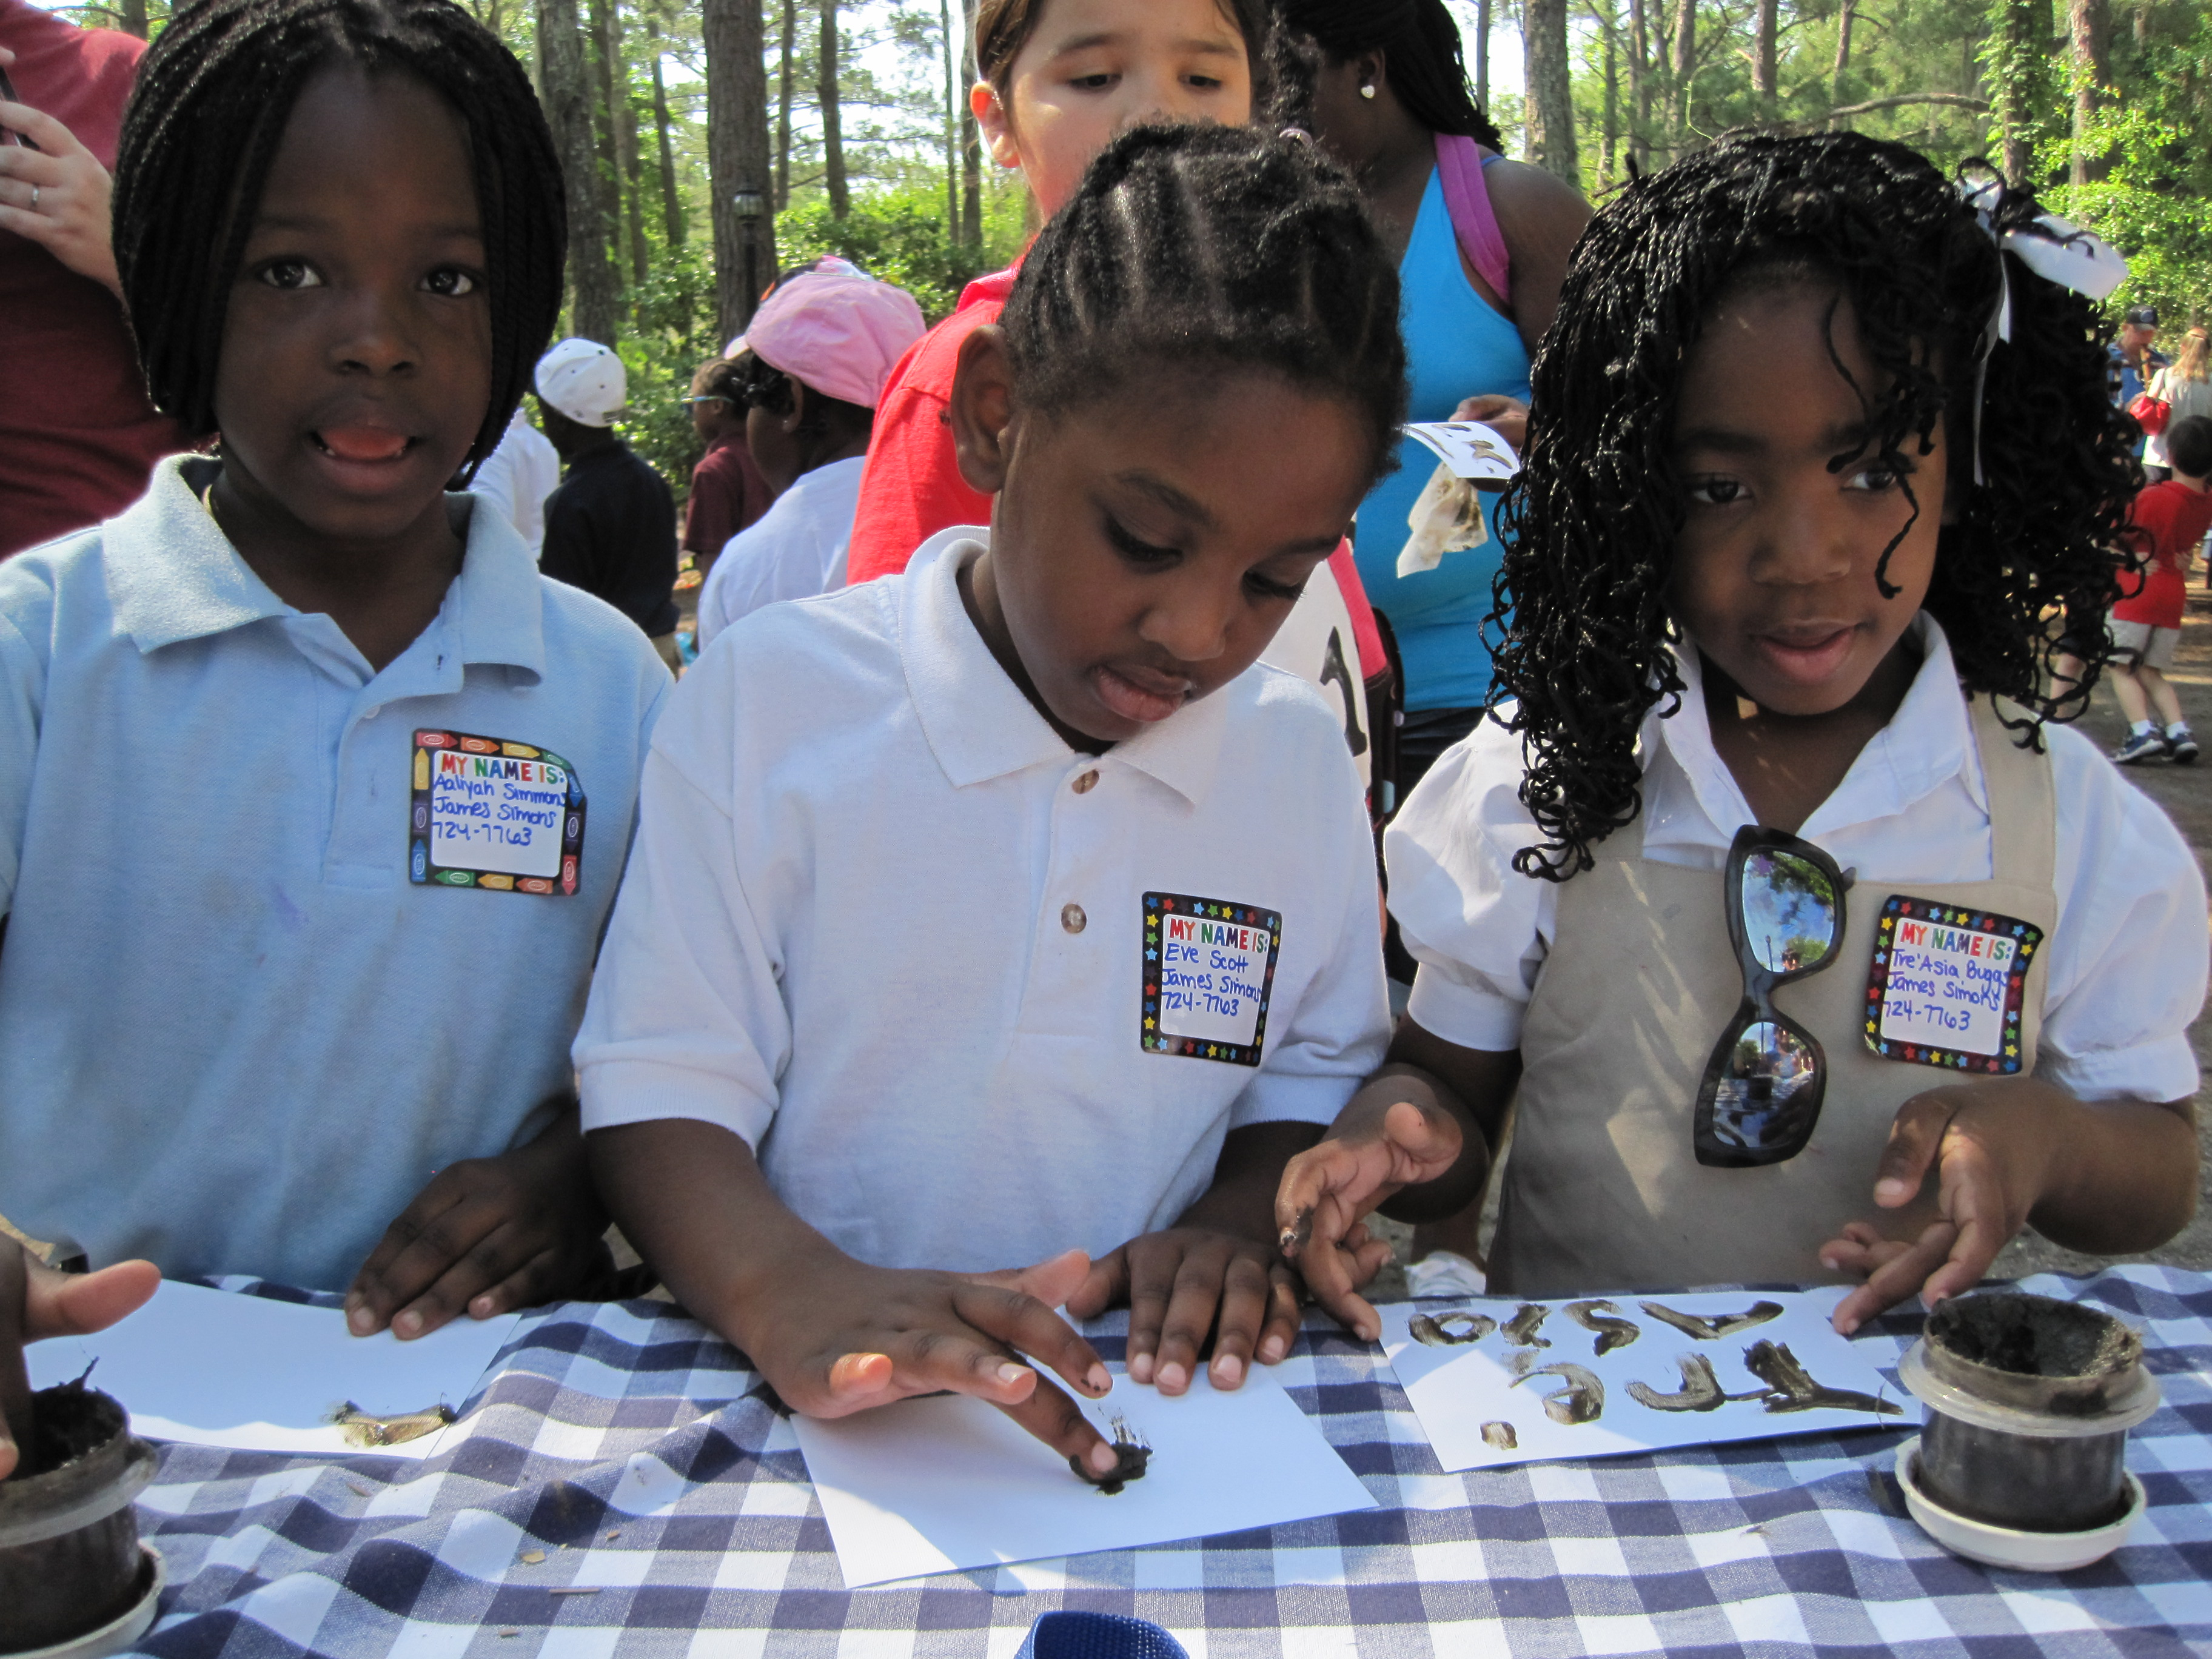 Children at the Drayton Hall table experiment with pluff mud drawings!